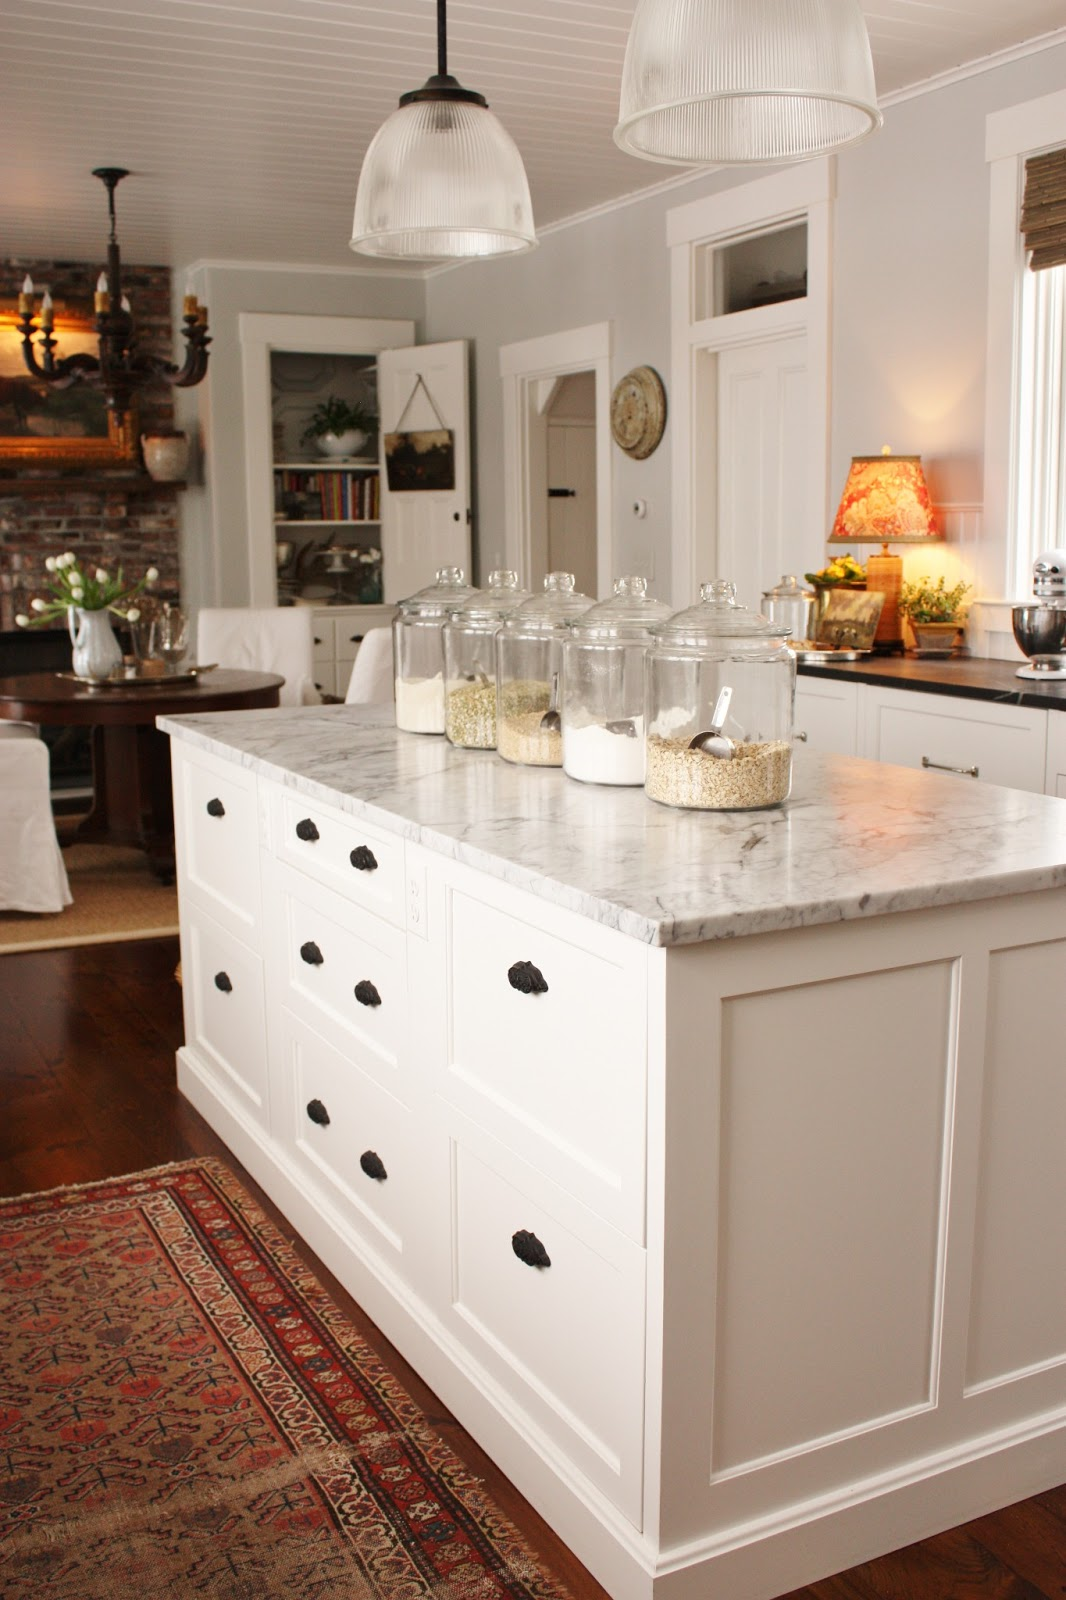 Kitchen Island Cabinets Both Sides For The Love Of A House Kitchen Drawers The Island